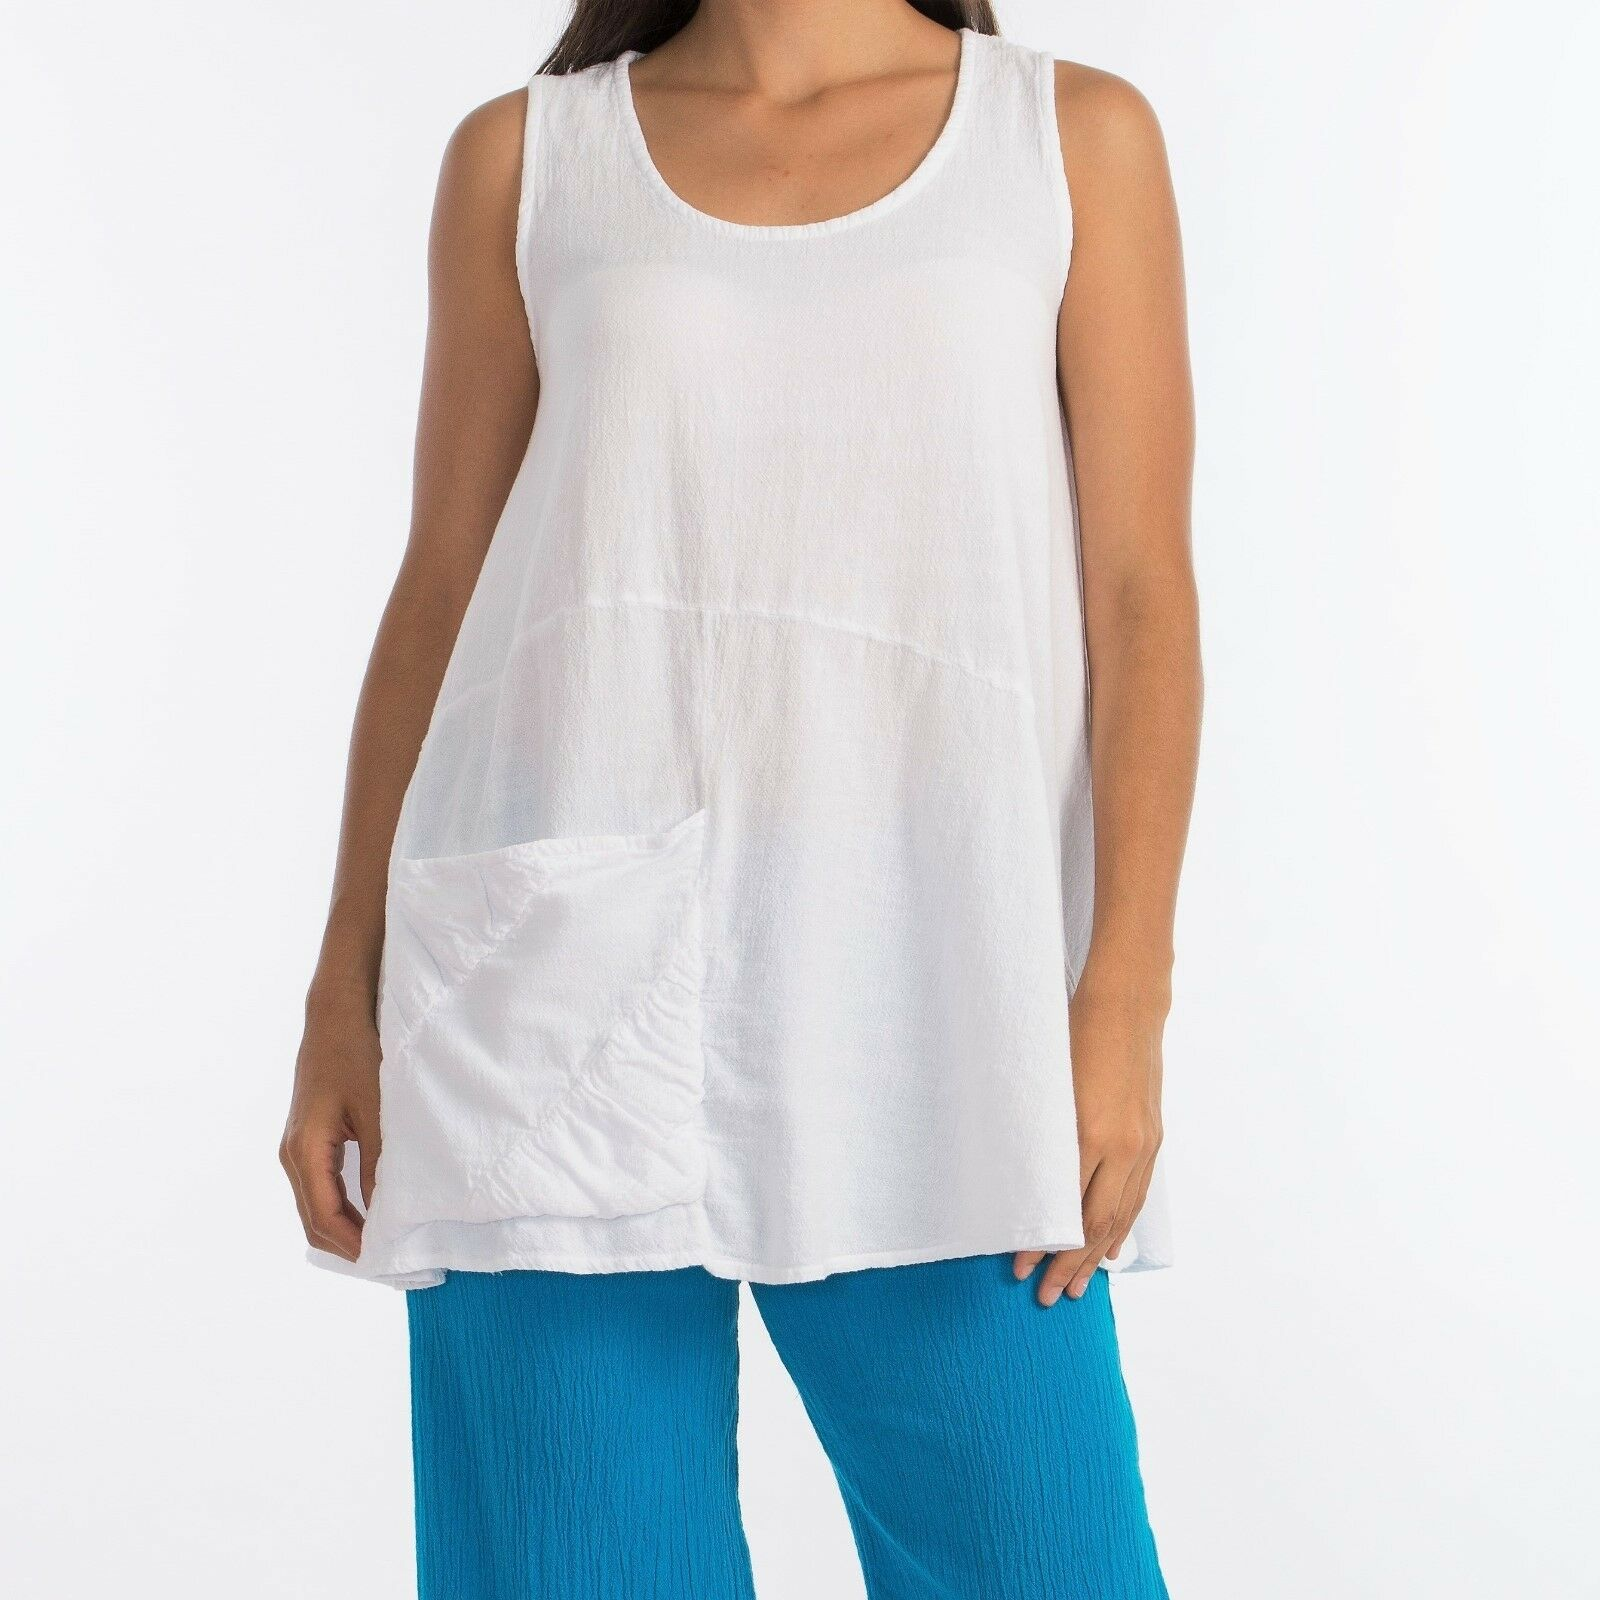 Sparrow Top by Dunes Relaxed Fashions, New with Tags, 100% Cotton, Free Shipping